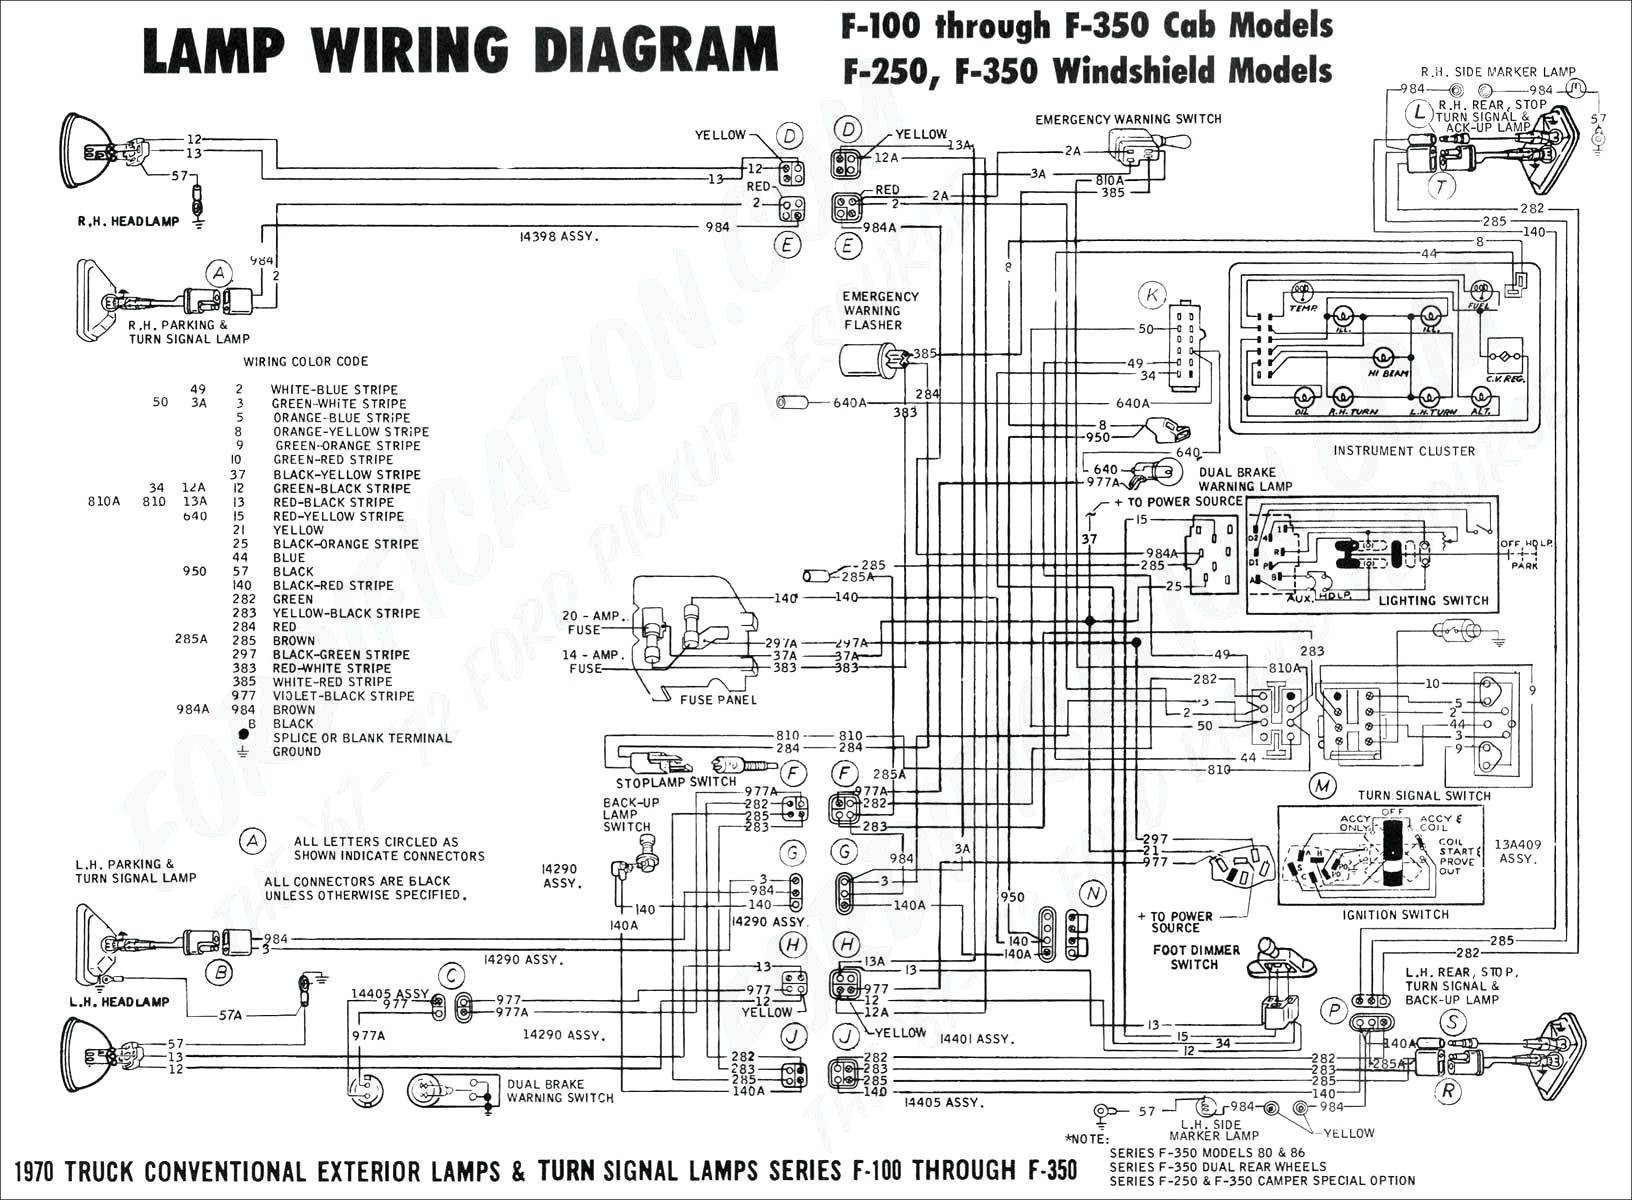 Vw Beetle Wiper Motor Wiring Diagram Inspirational Alternator Wiring Diagram Vw Beetle New Vanagon Alternator Wiring